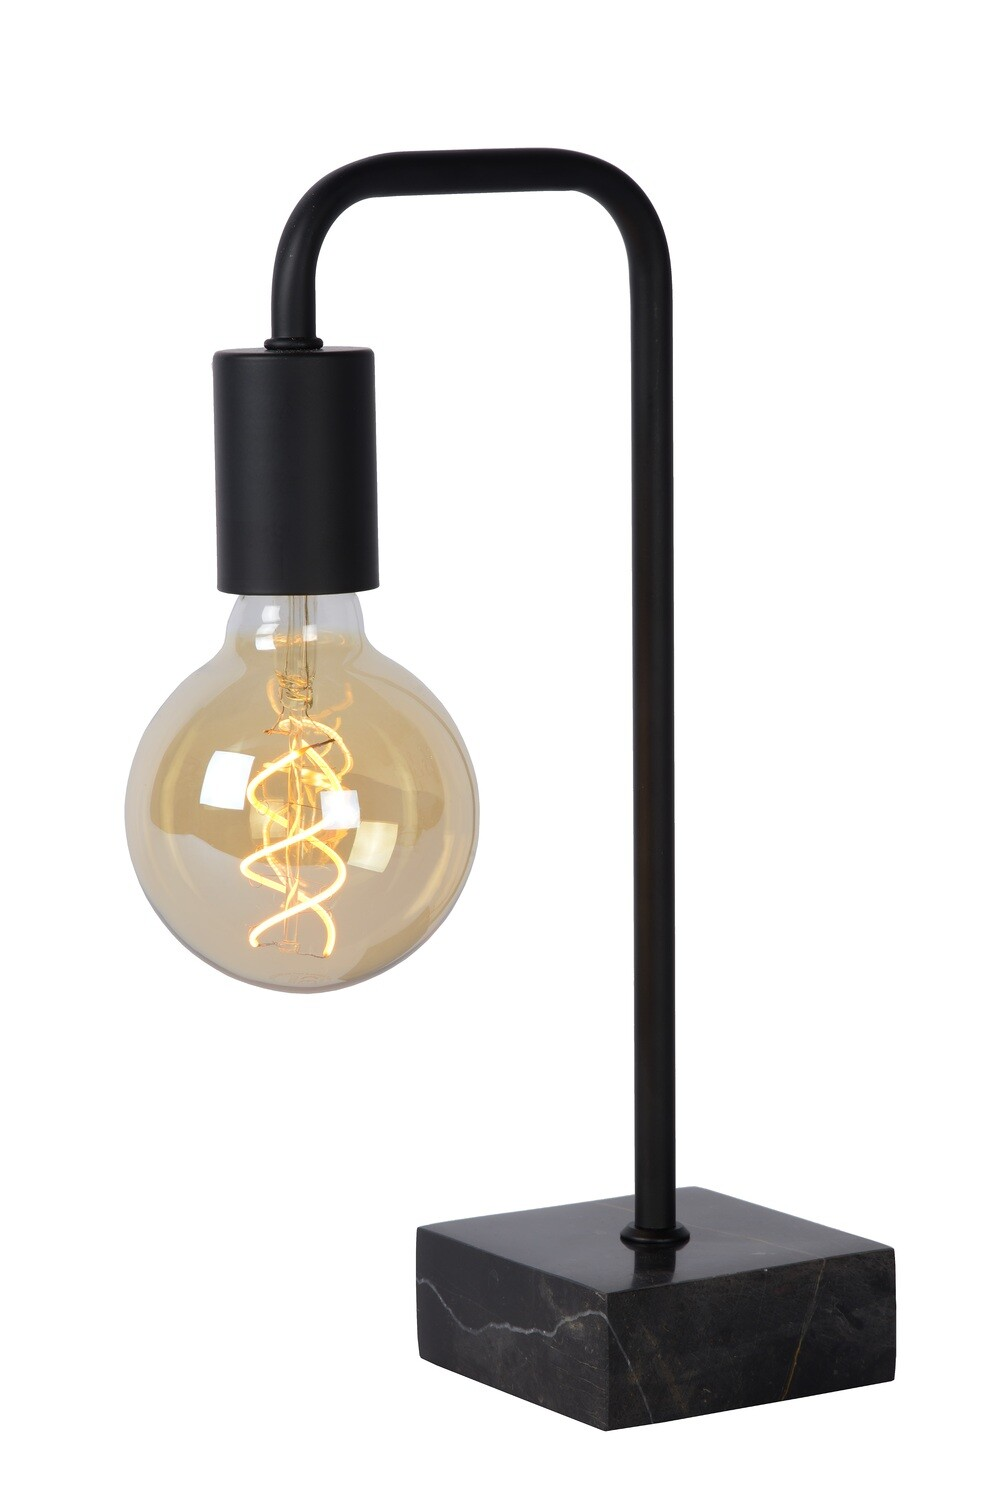 LORIN Table lamp Black complete with LED Filament bulb Ø 9,5 cm LED  1x5W 2200K Amber